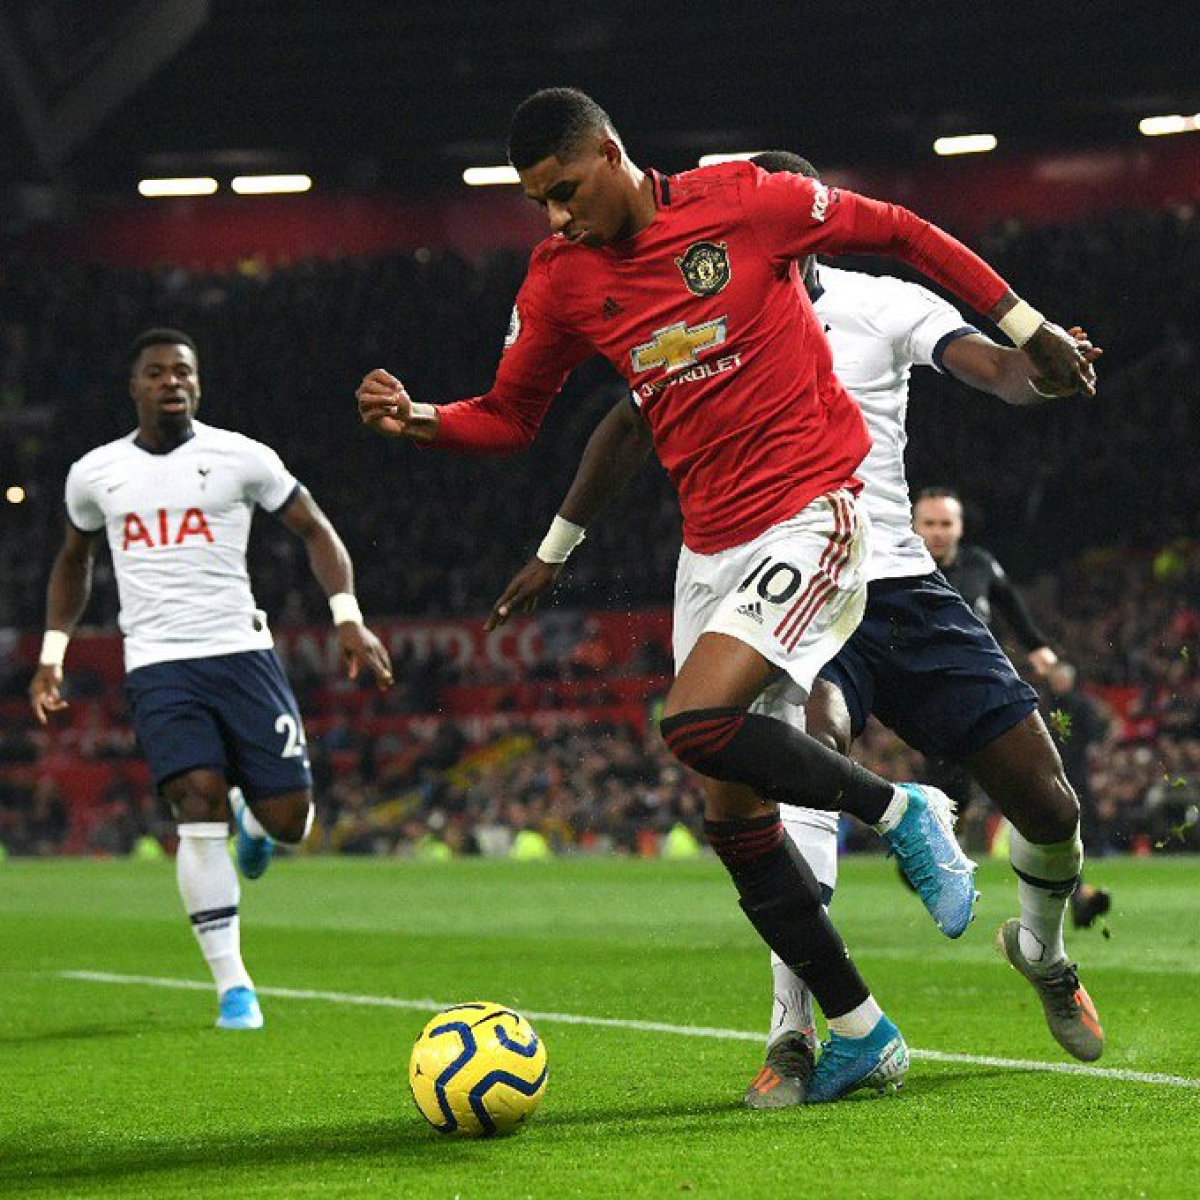 Man City vs Arsenal, Tottenham vs Manchester United: Check out Premier League schedule in IST